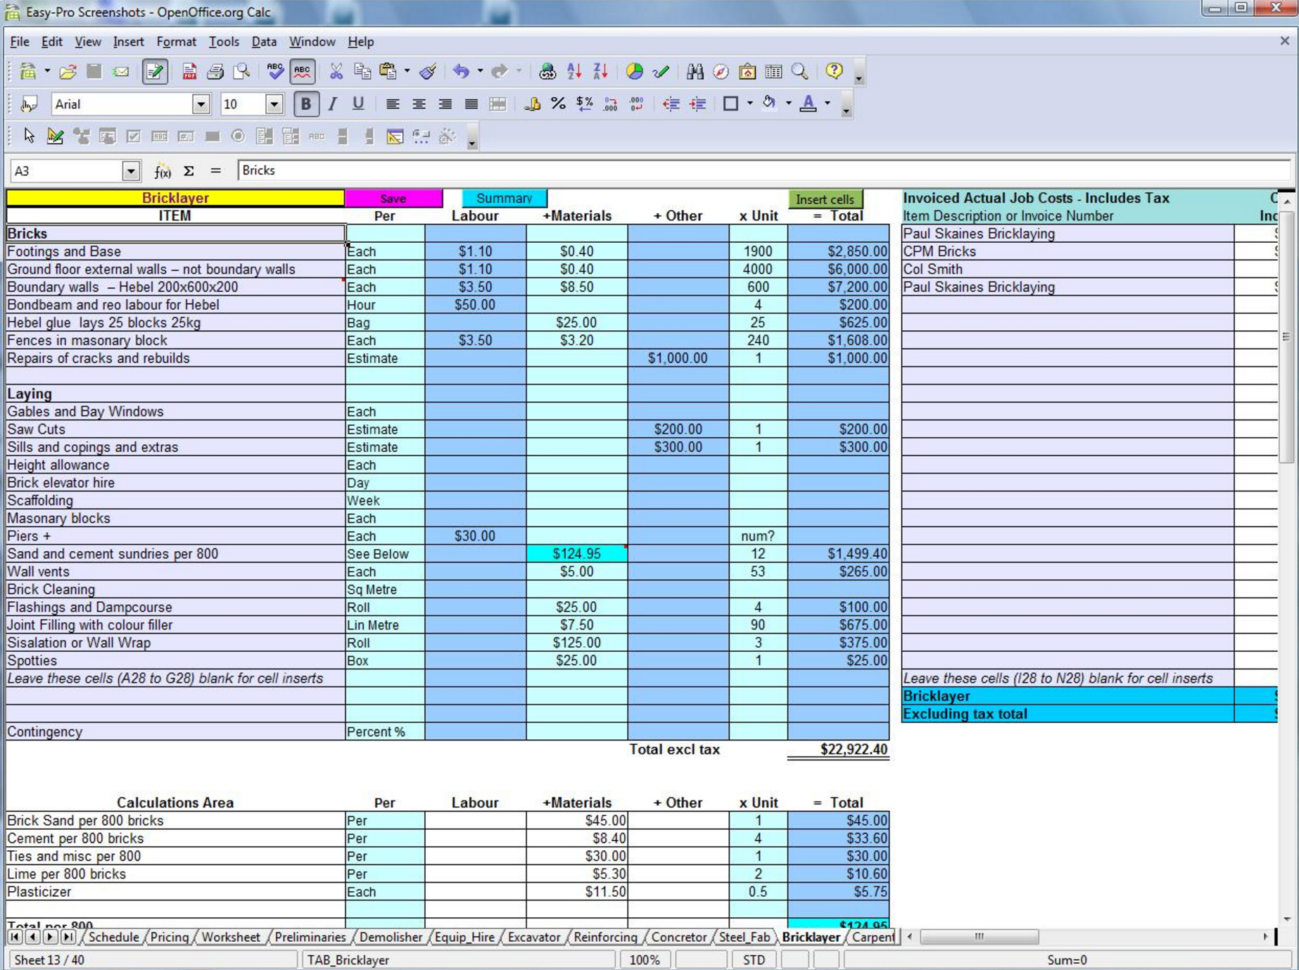 Bid Spreadsheet In 5 Free Construction Estimating  Takeoff Products Perfect For Smbs